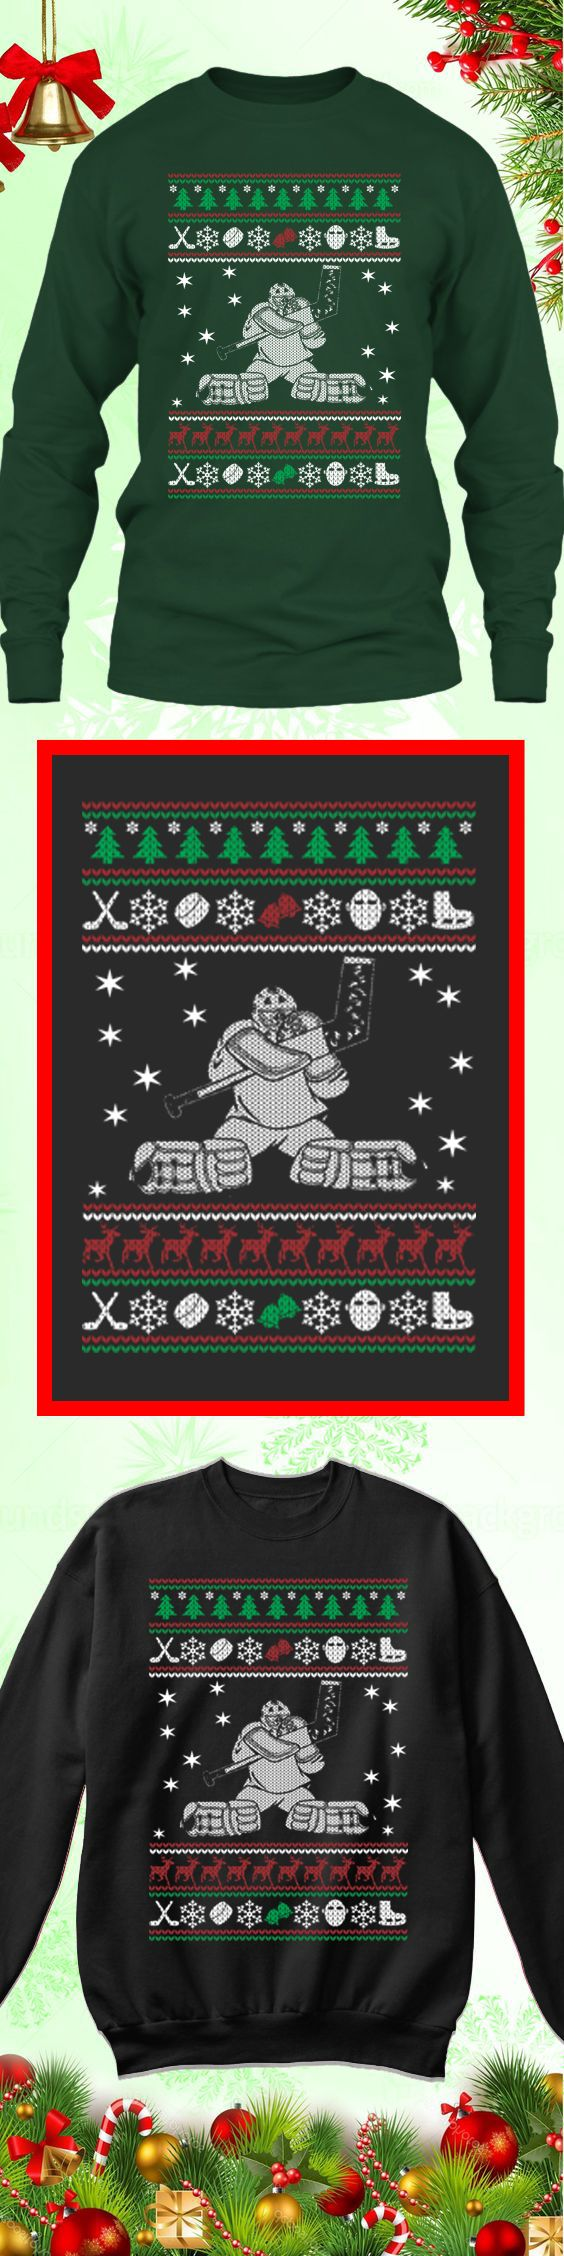 Need a last minute Christmas Gift? Get this limited edition Hockey Goalie Ugly Christmas Sweater while supplies last! Buy 2 or more, save on shipping!